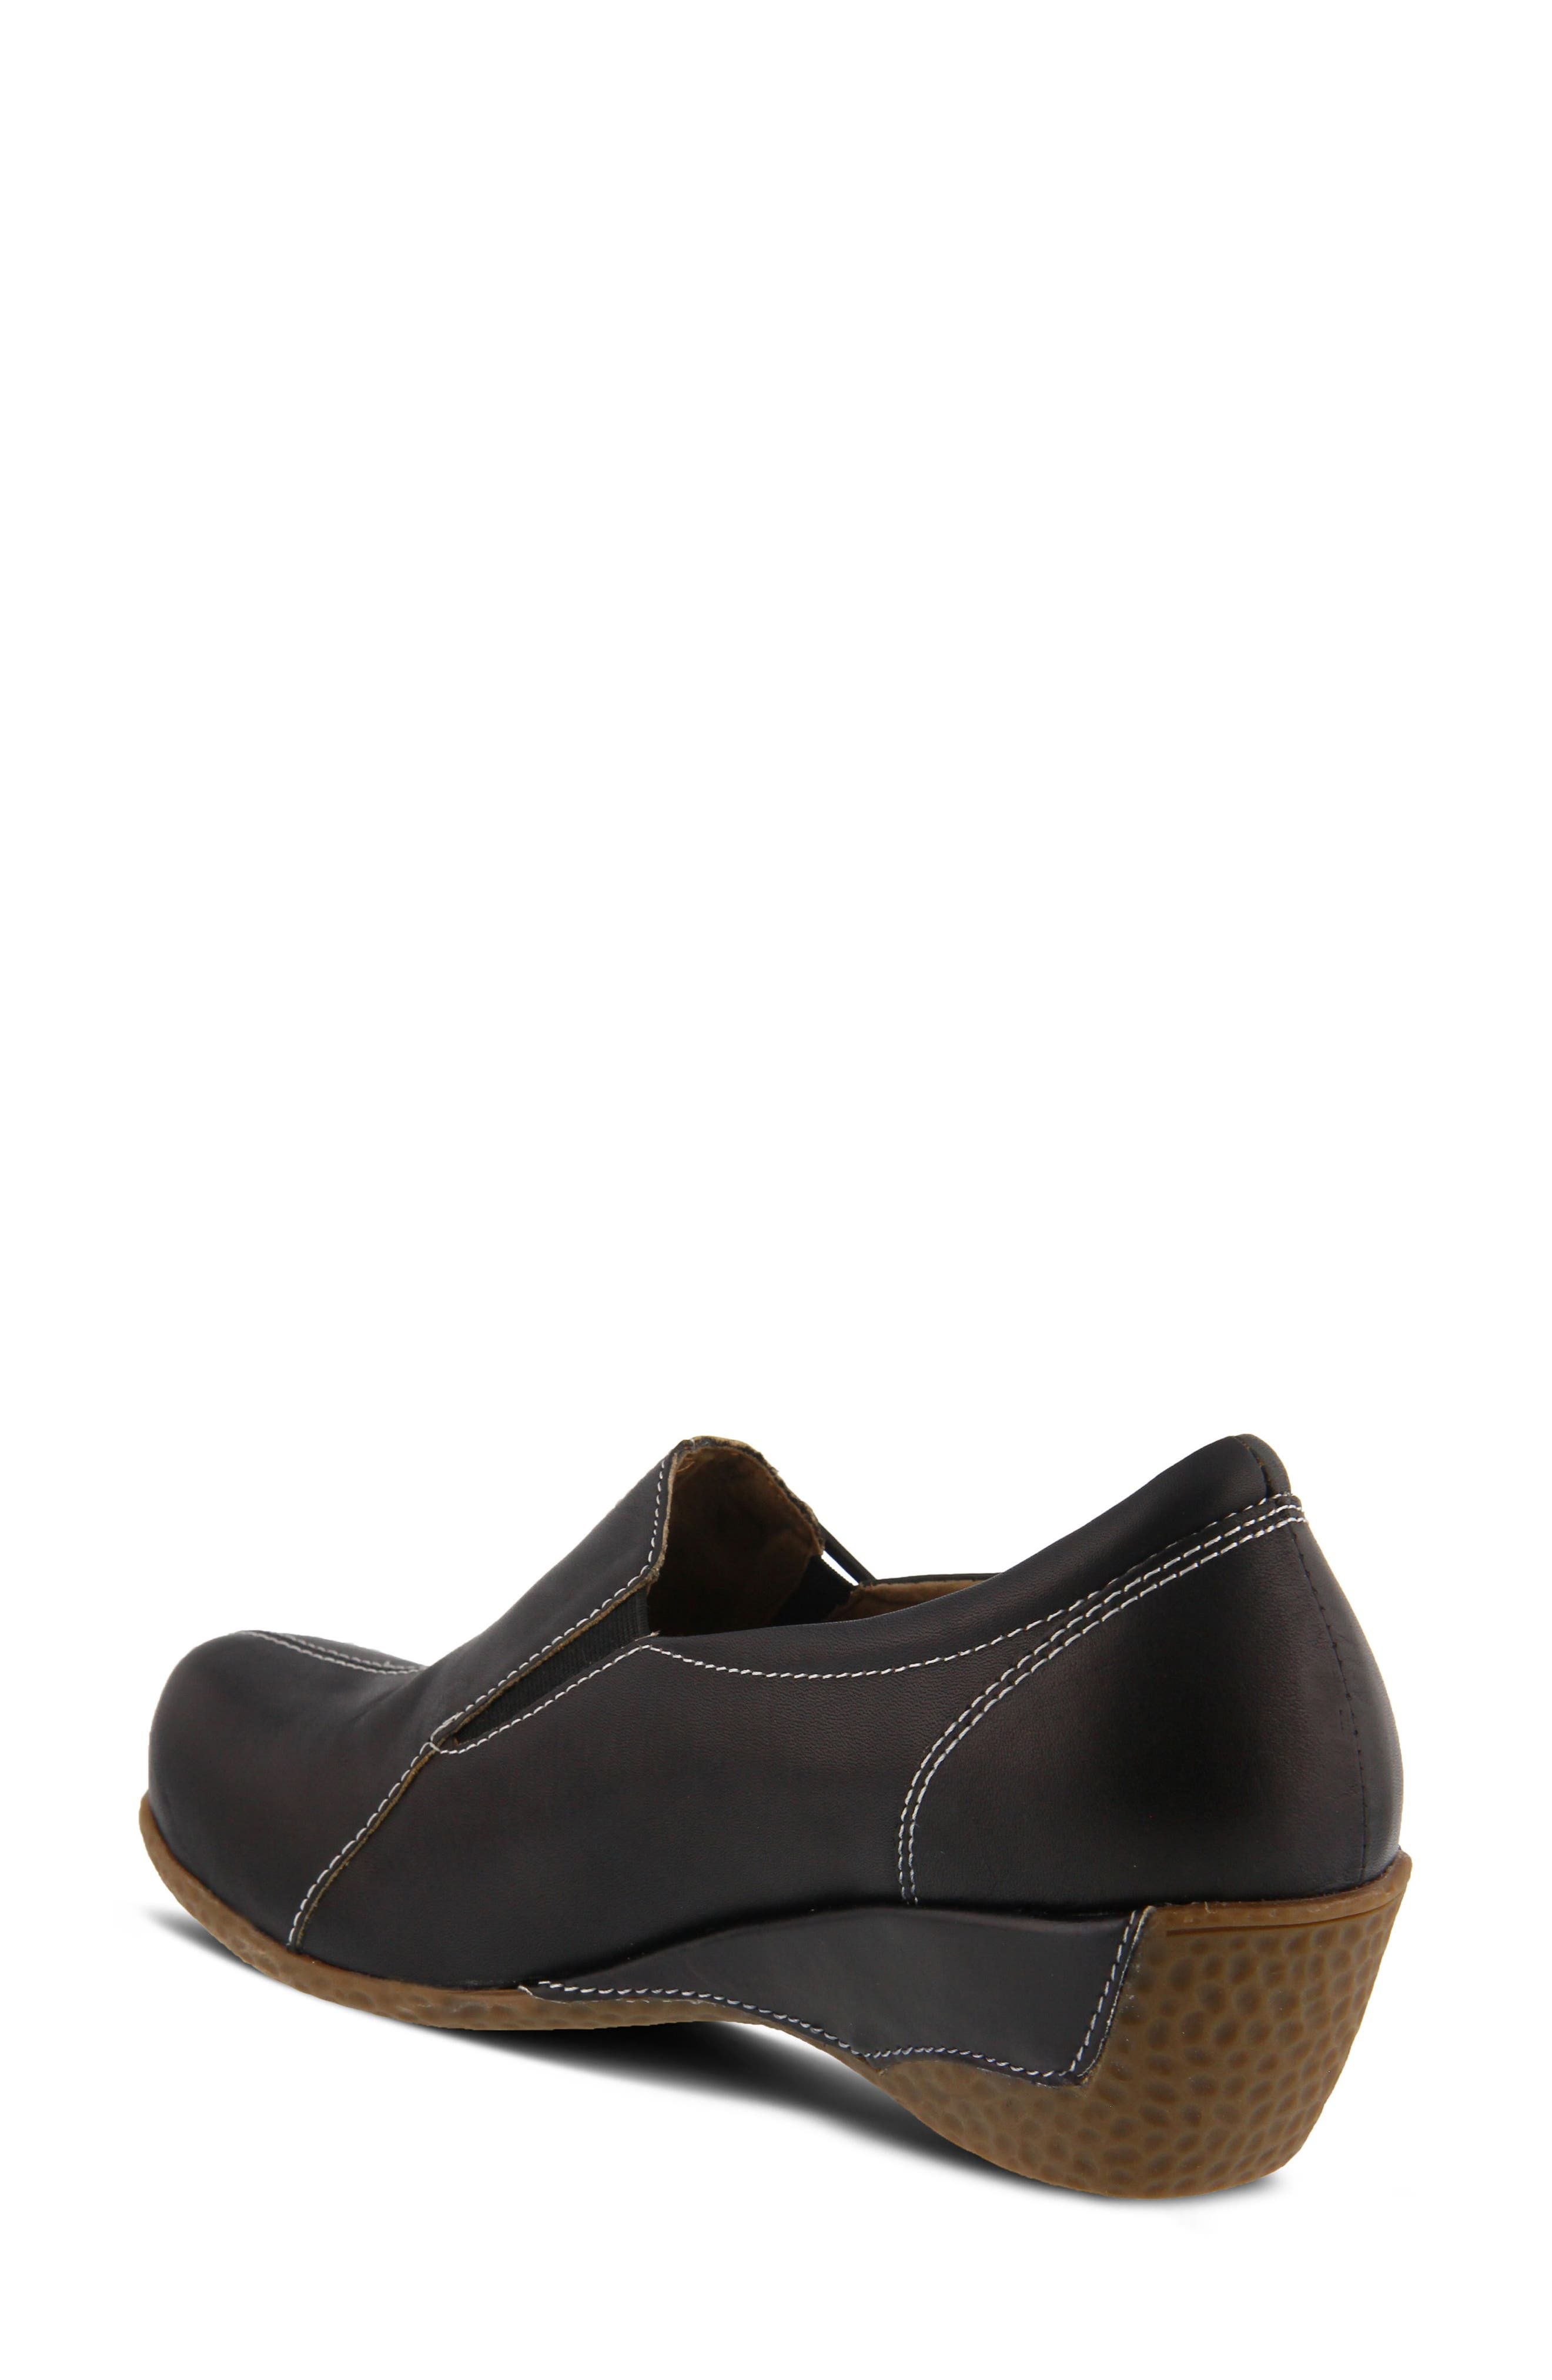 L'Artiste Agacia Slip-On,                             Alternate thumbnail 2, color,                             BLACK LEATHER